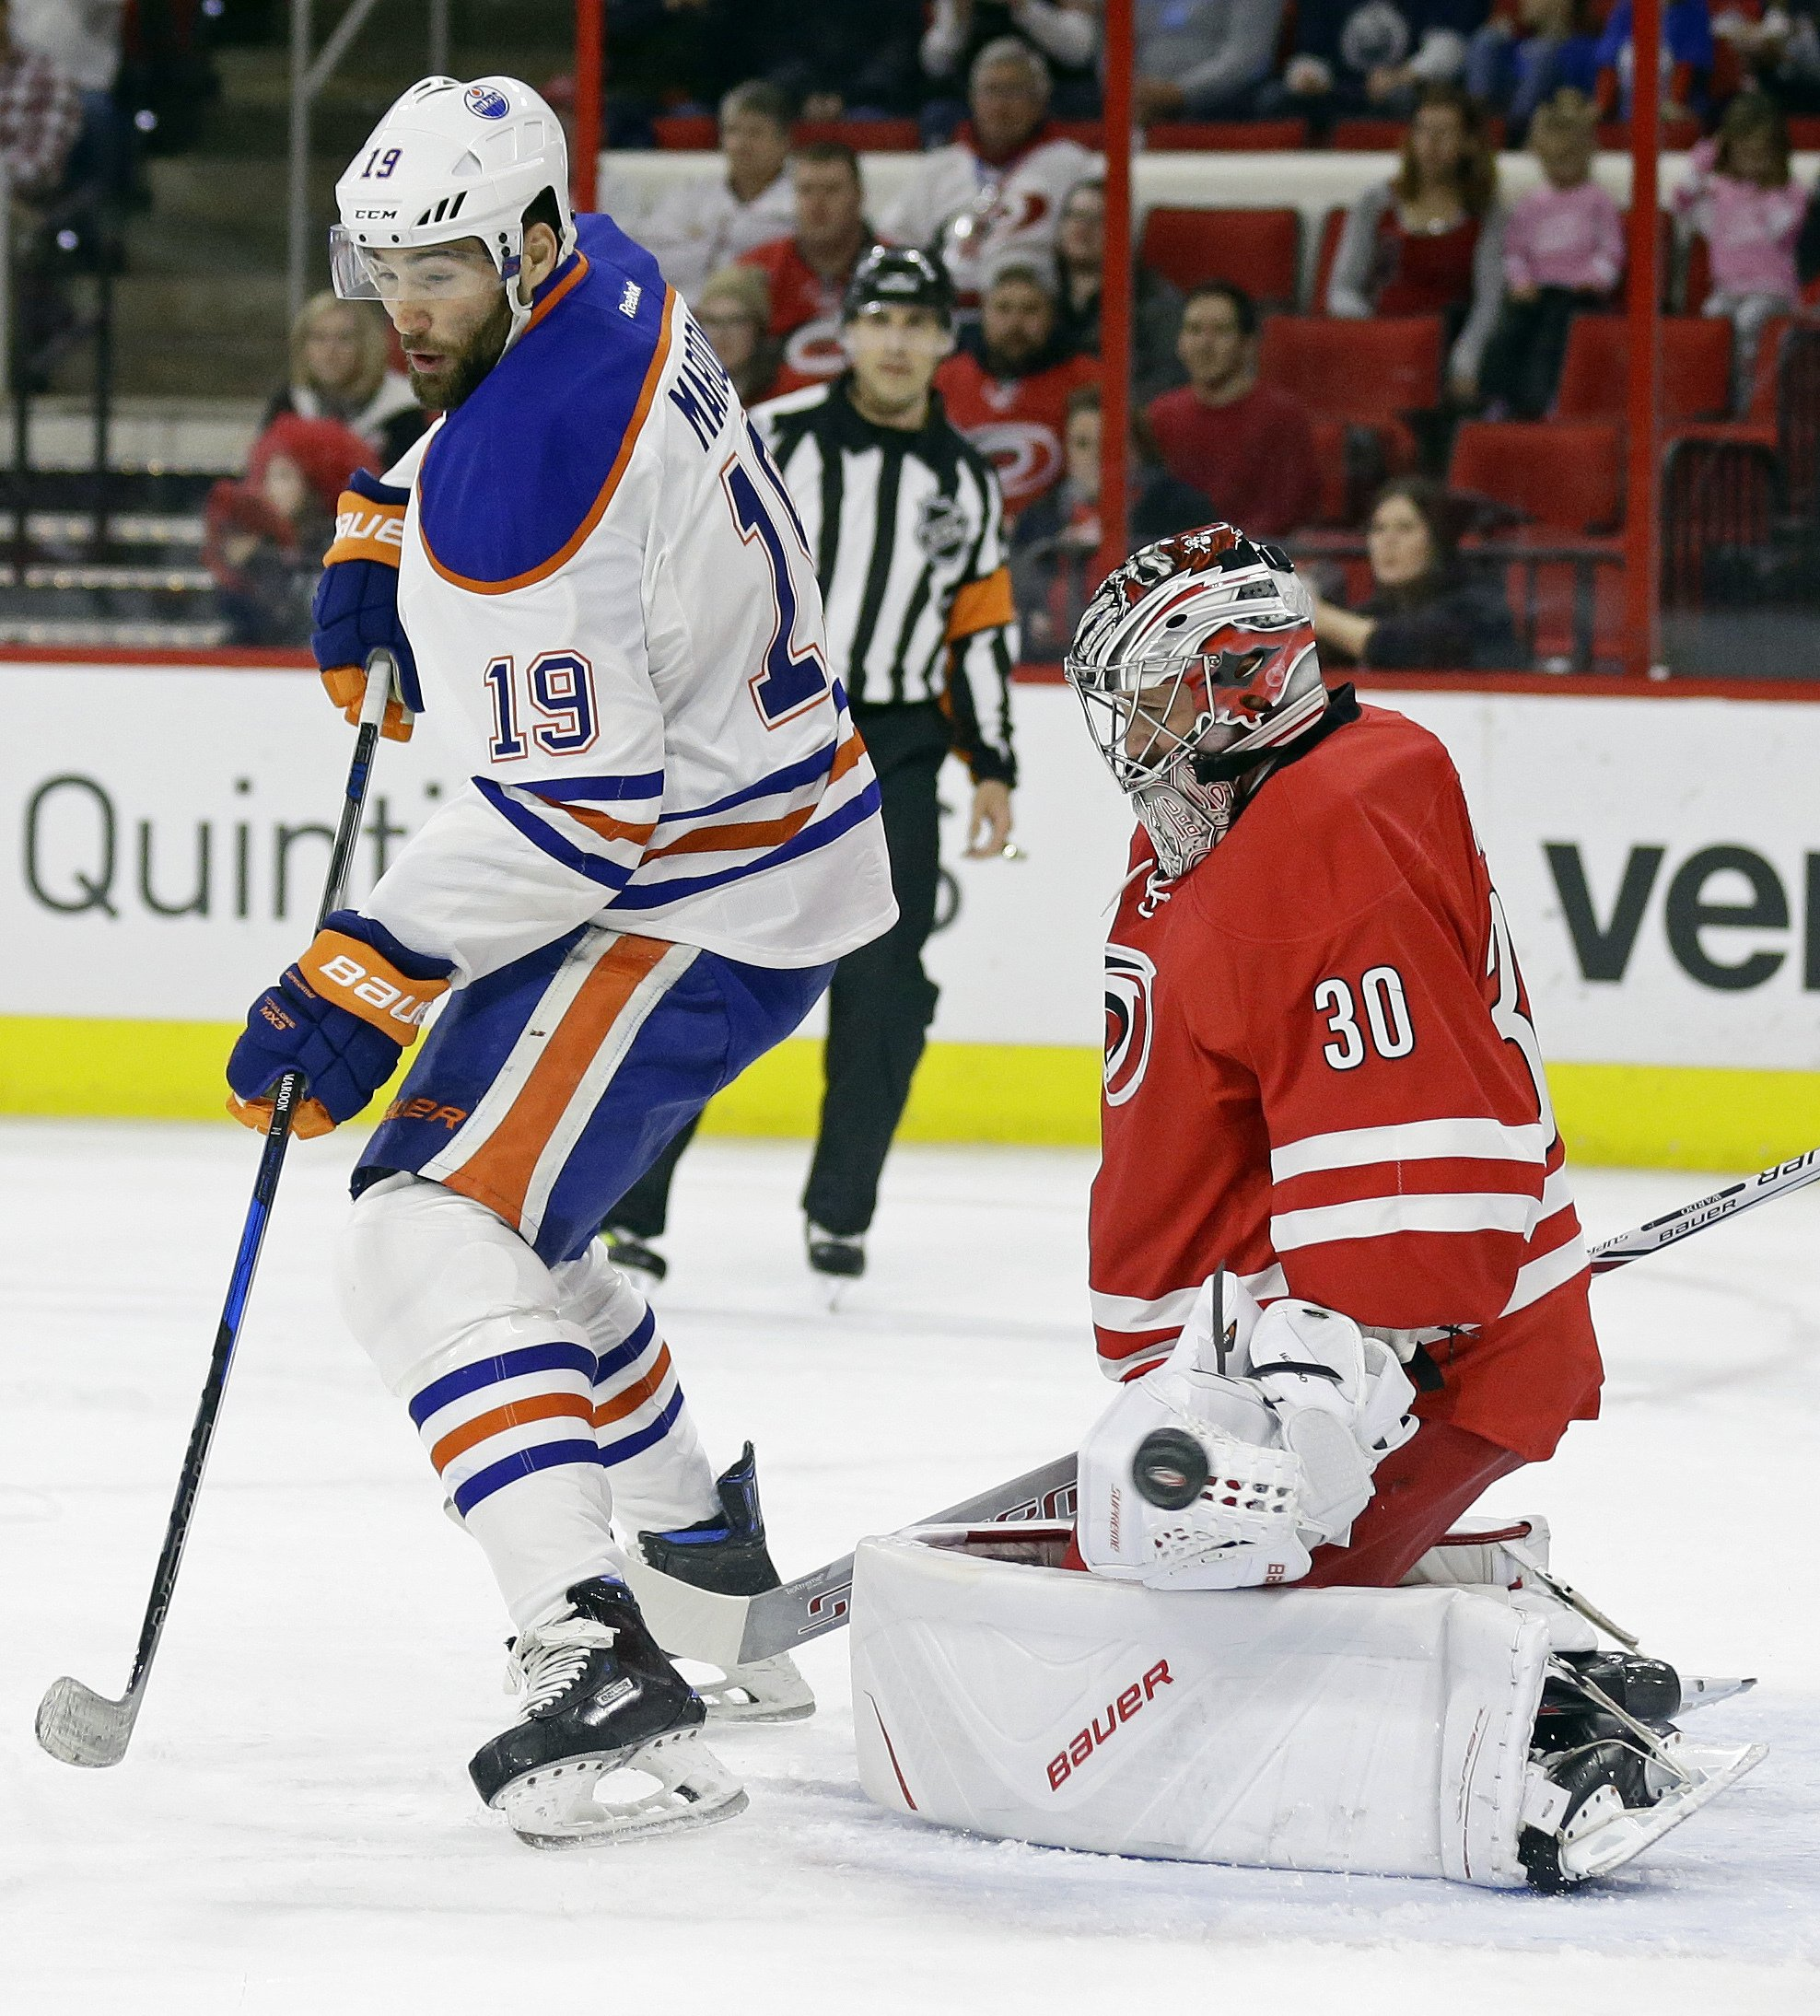 Aho scores winning goal to lead Hurricanes past Oilers 2-1 6d64f8595